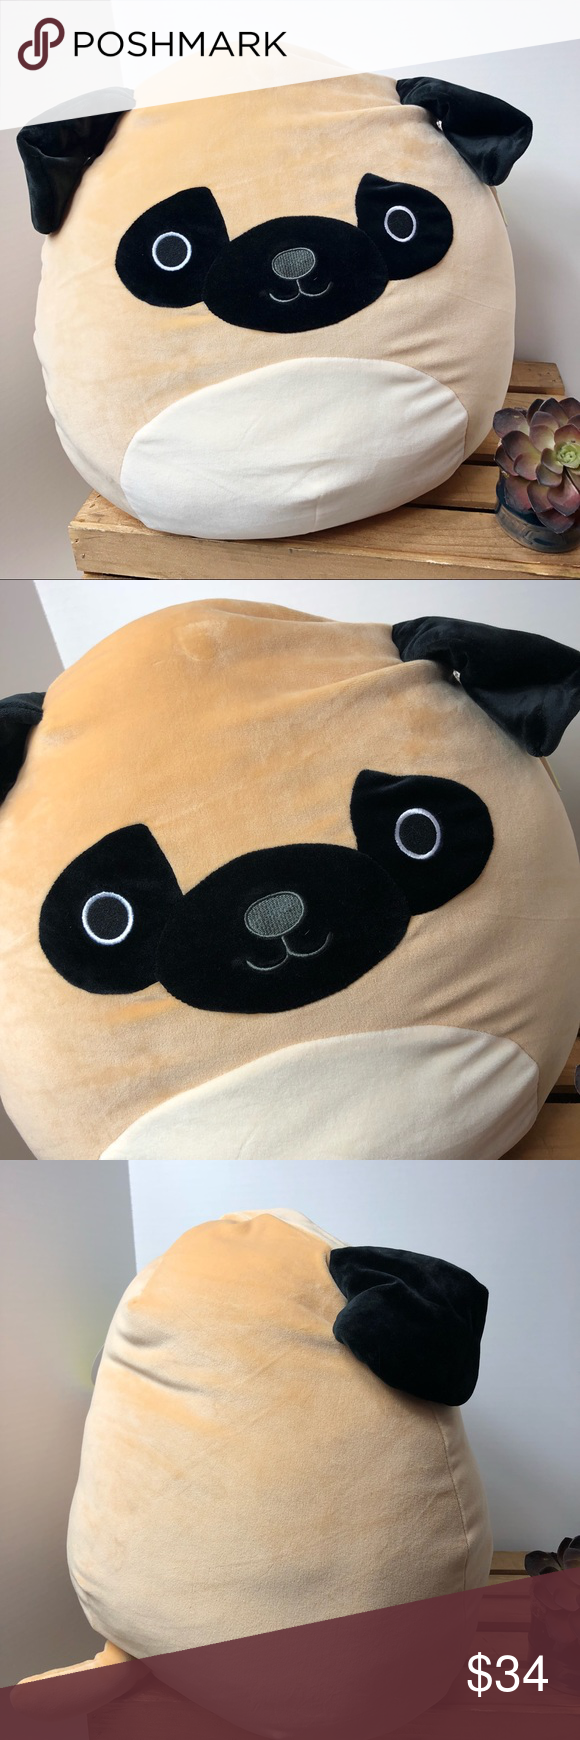 Squishmallow 16 Prince The Pug Kellytoy Plush Plush Pugs Things To Sell